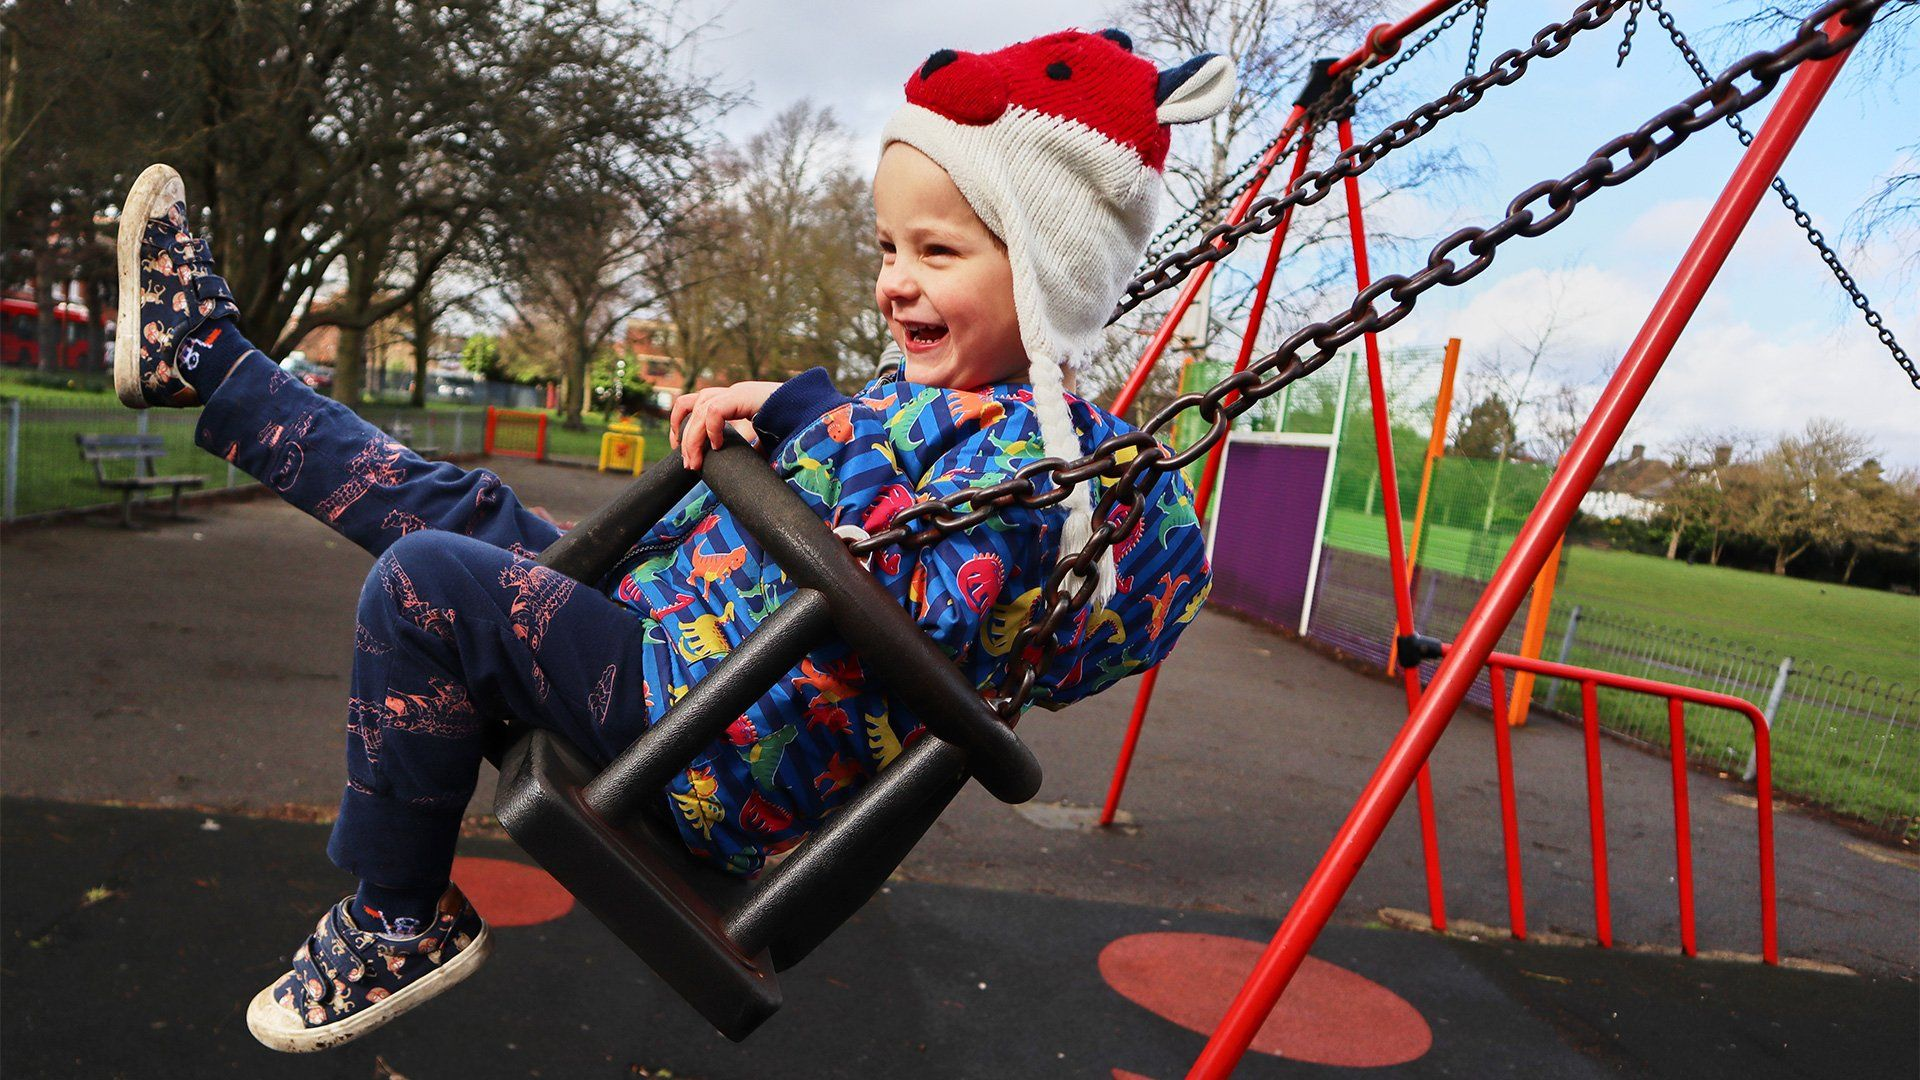 A young boy swings on a swing, laughing. Taken on a Canon EOS M50 by Katja Gaskell.